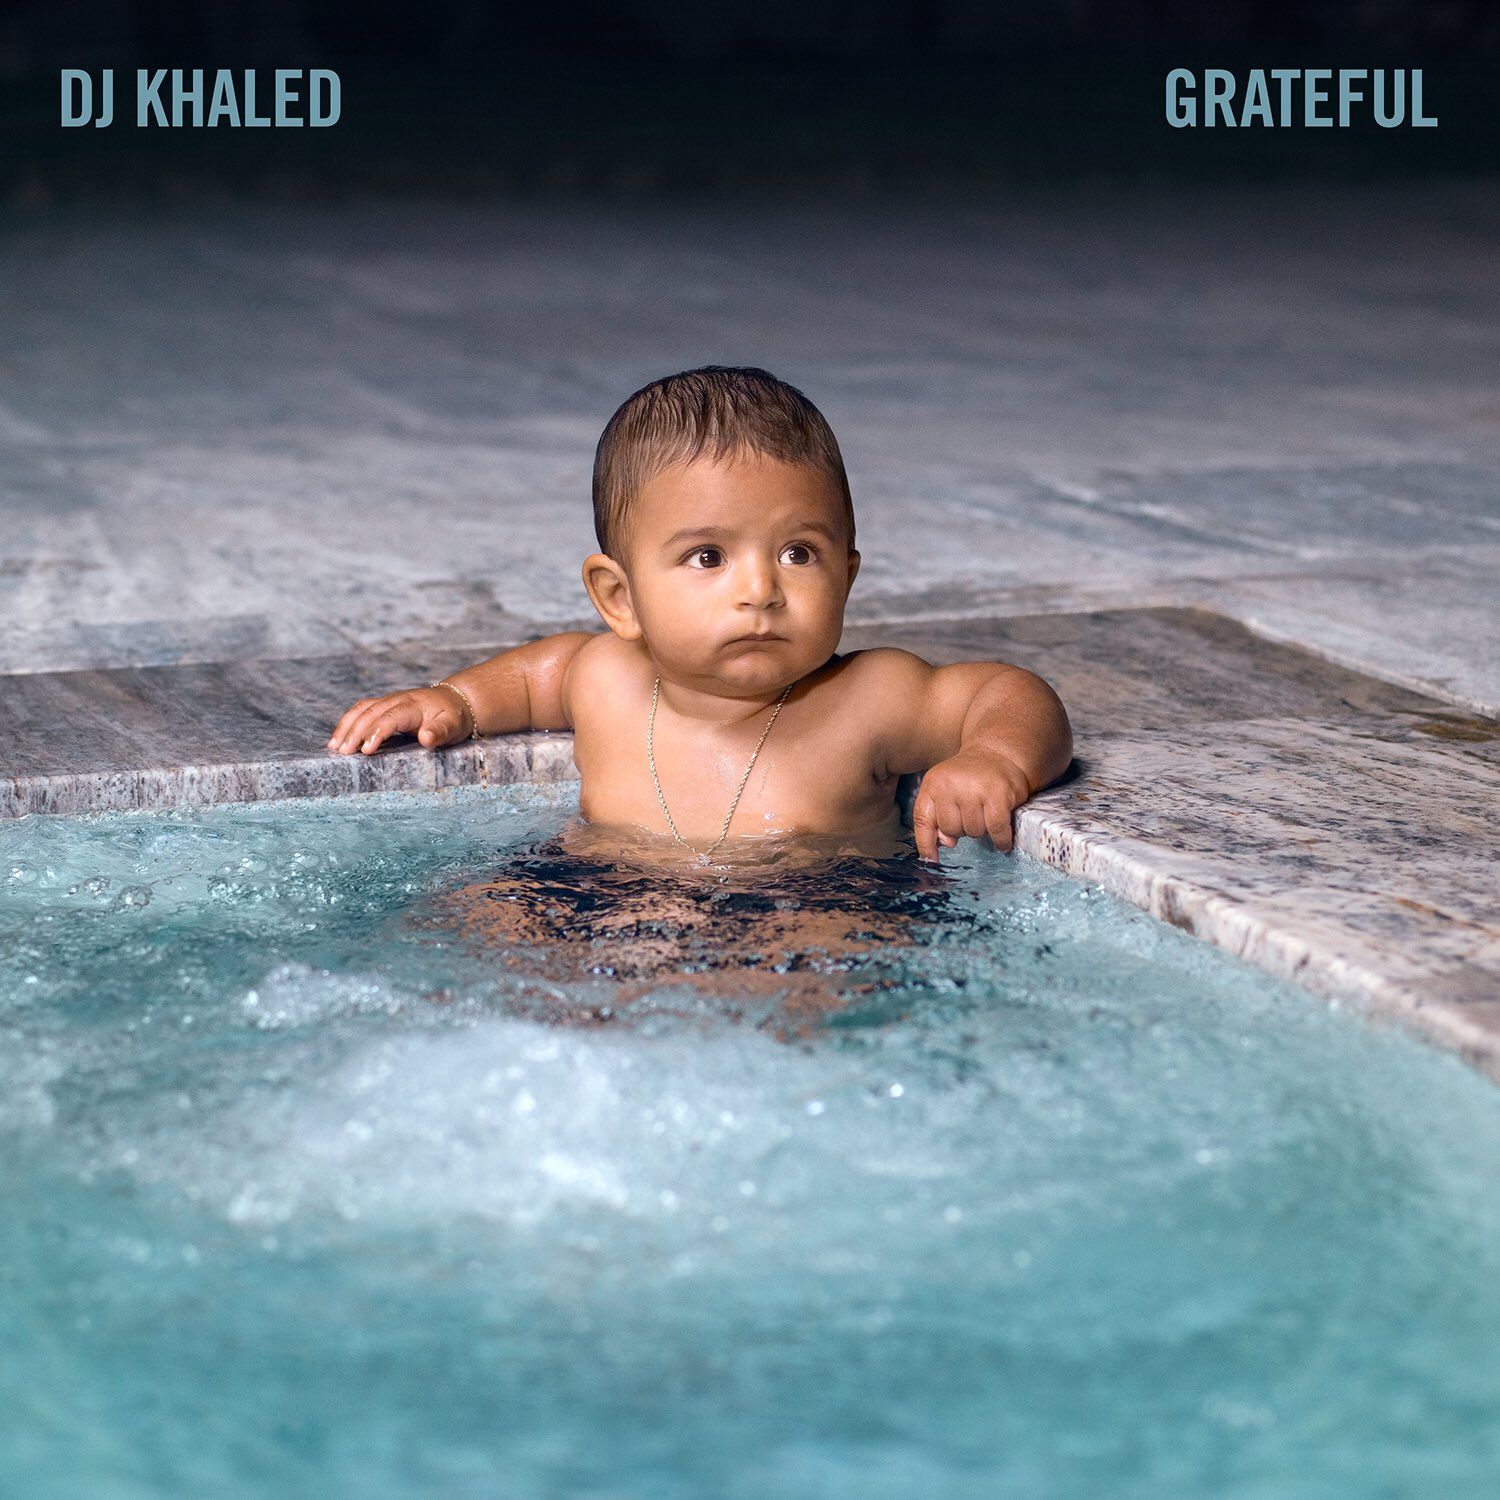 Pre-Order @djkhaled's new album  #GRATEFUL now and get #ToTheMax feat. @drake instantly ������ https://t.co/phYtogKm1O https://t.co/xjvlv5GSf5